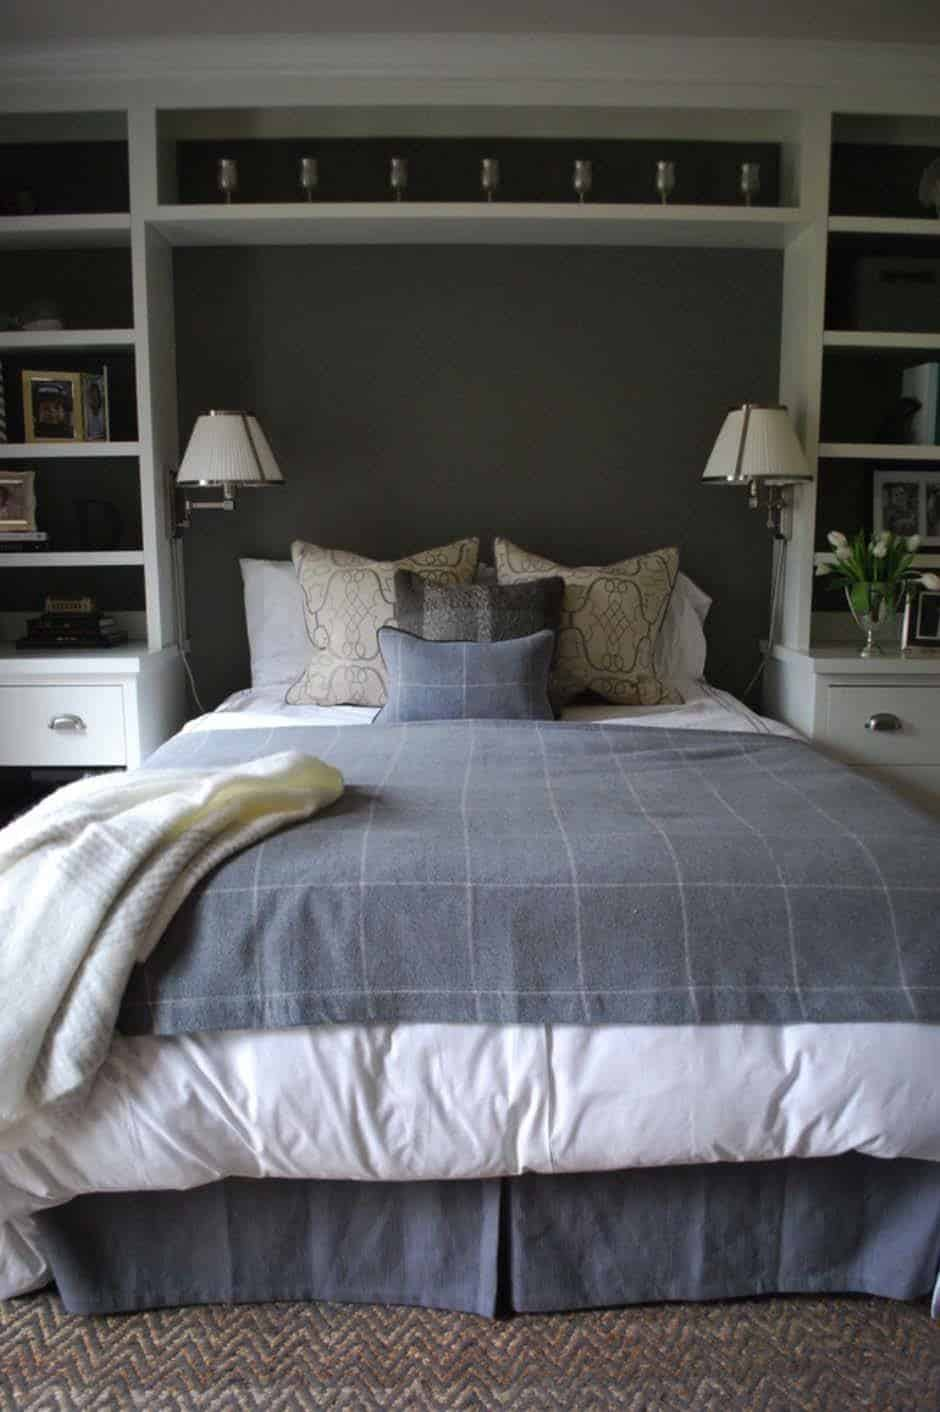 Bedroom Headboard Alternatives-28-1 Kindesign